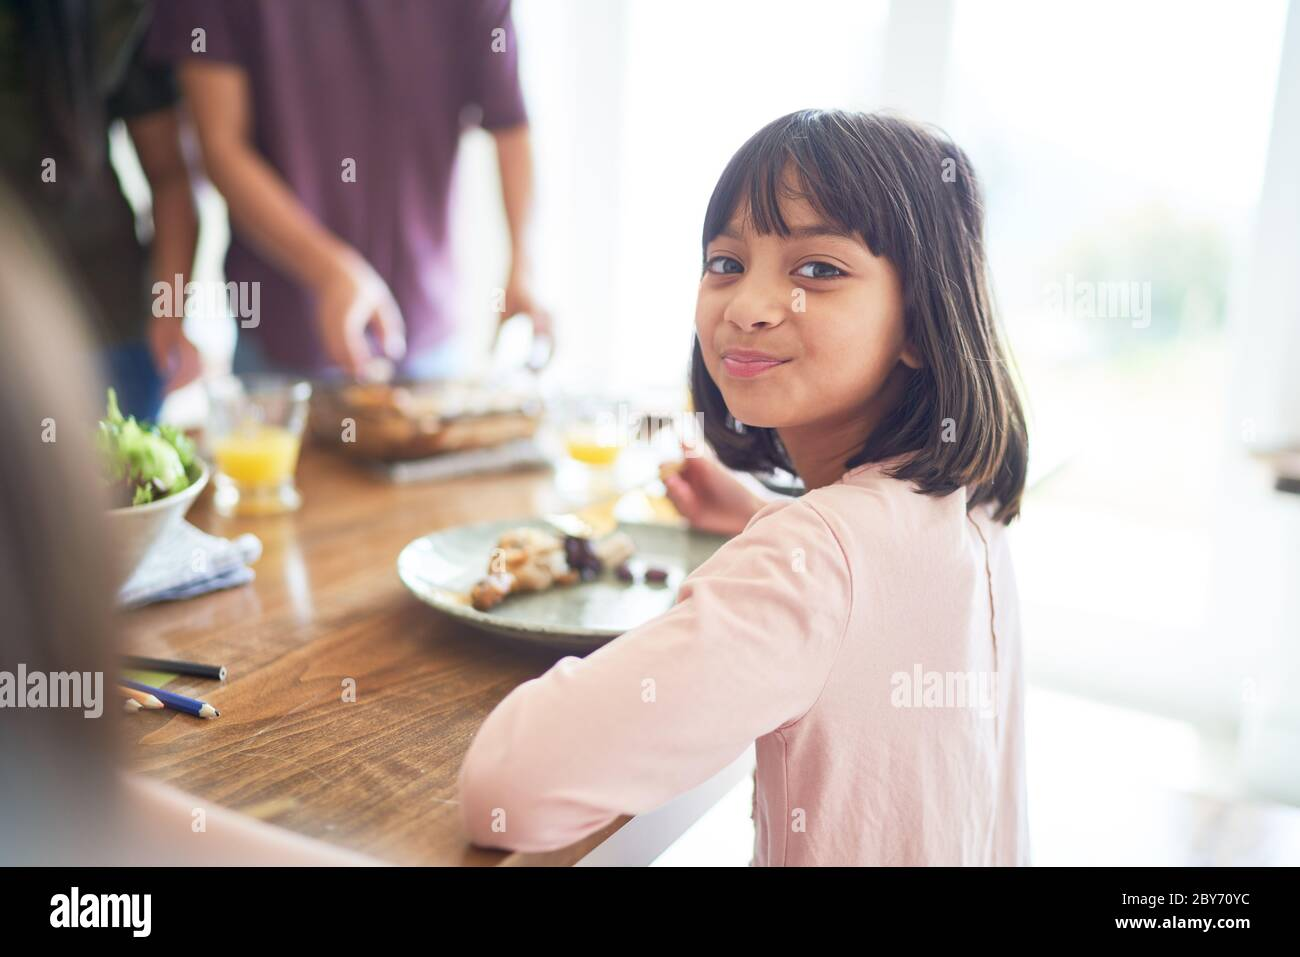 Portrait happy girl eating lunch with family at table Stock Photo